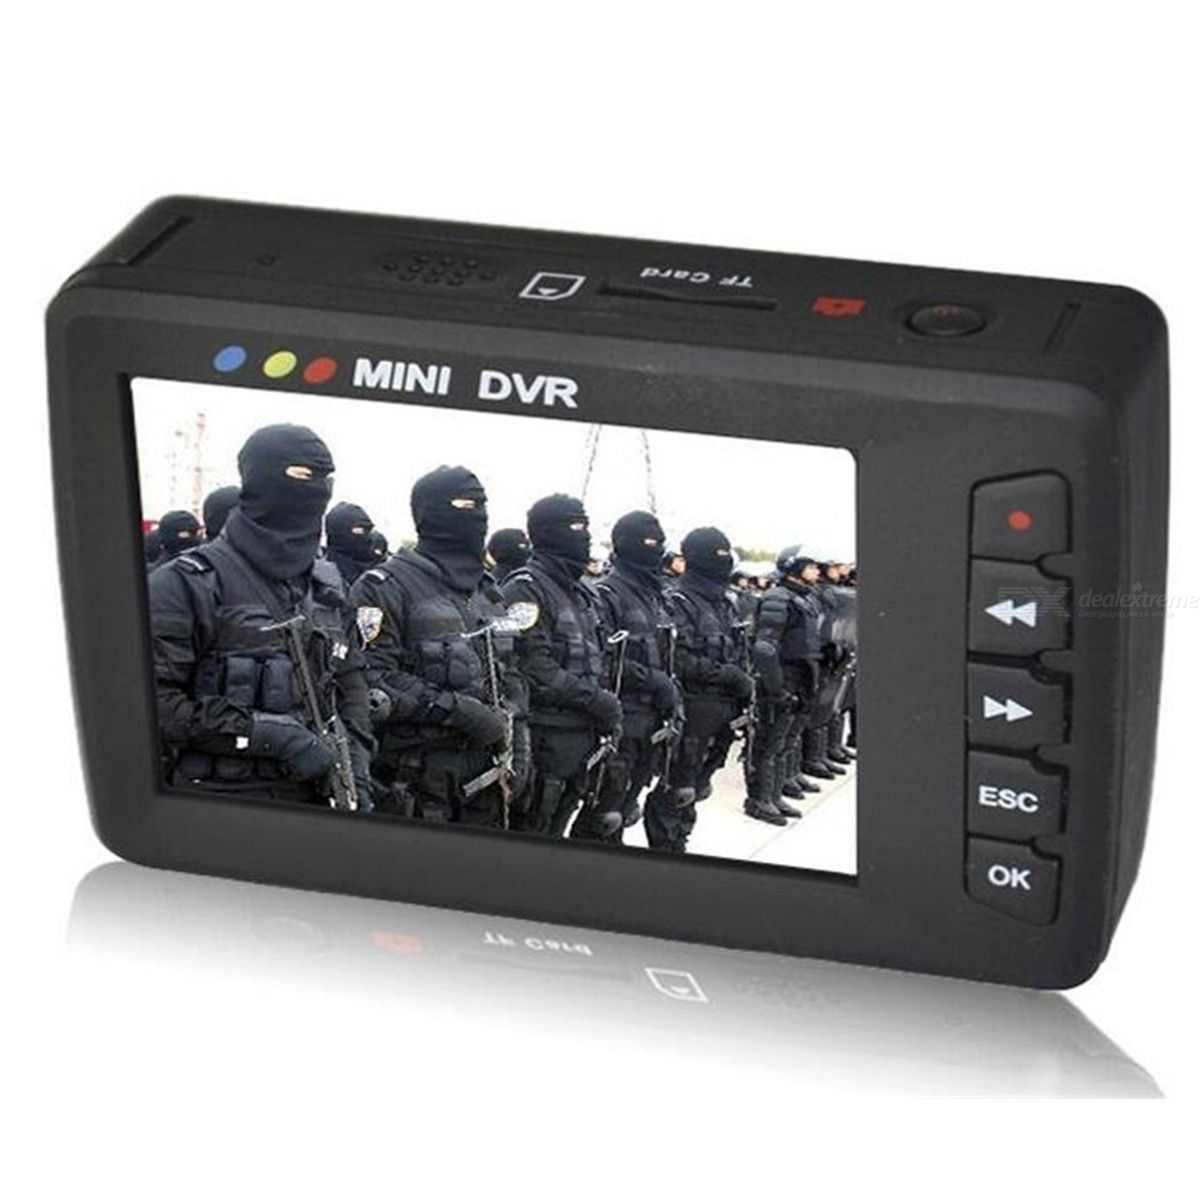 Quelima Portable Video Recorder Mini DVR Angel Eye AV Output Loop Video Camera US Plug